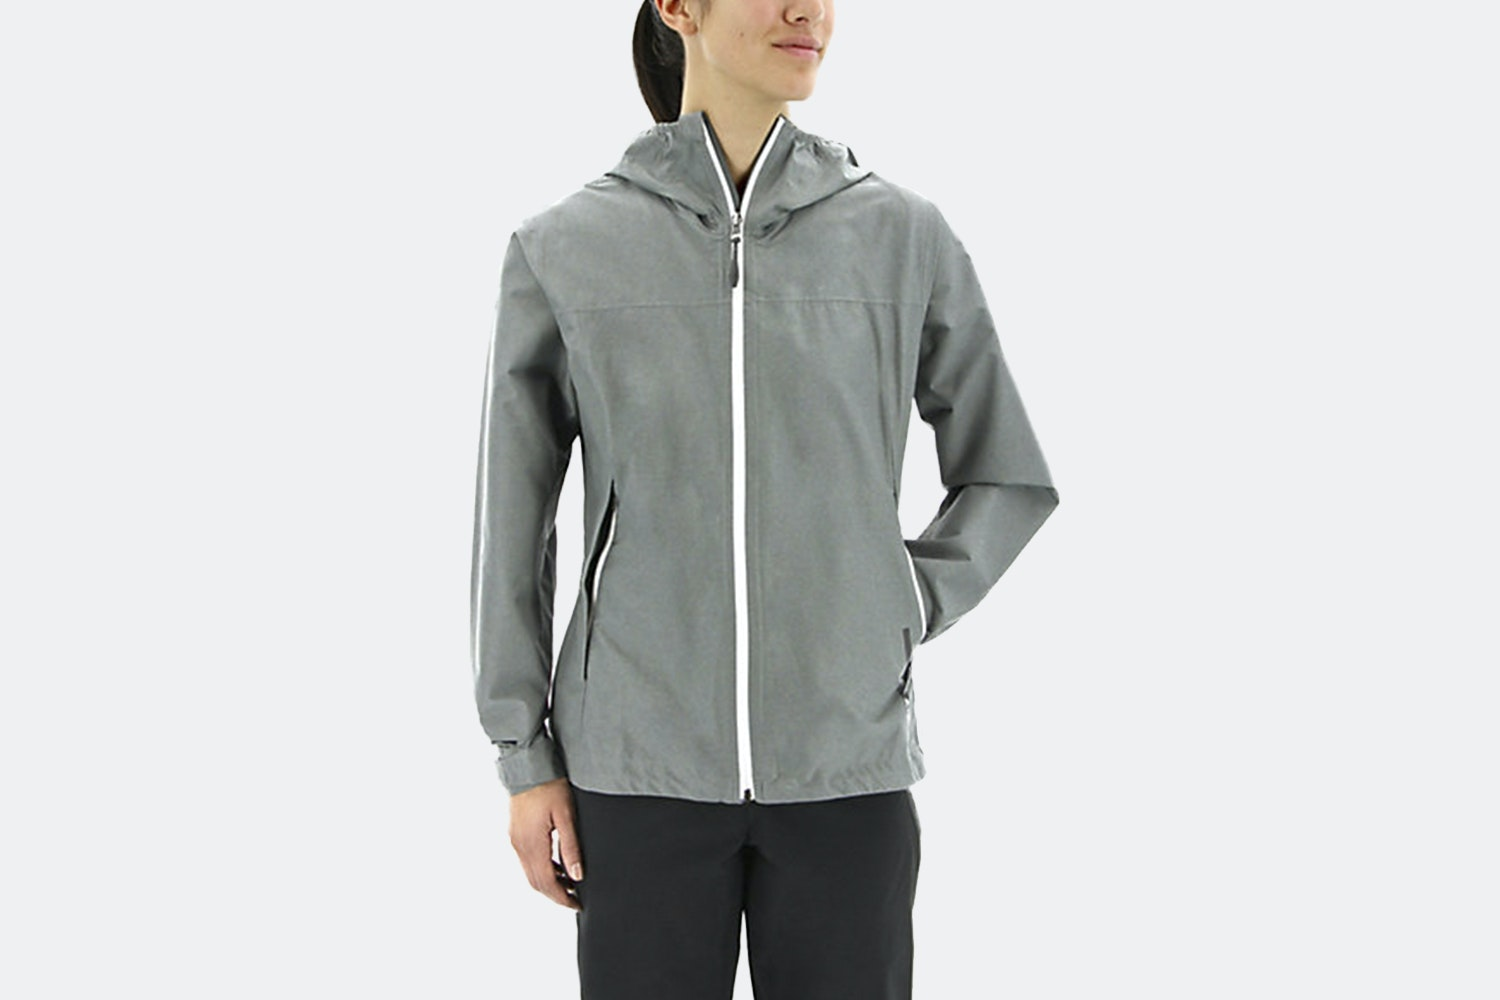 Women's – gray five